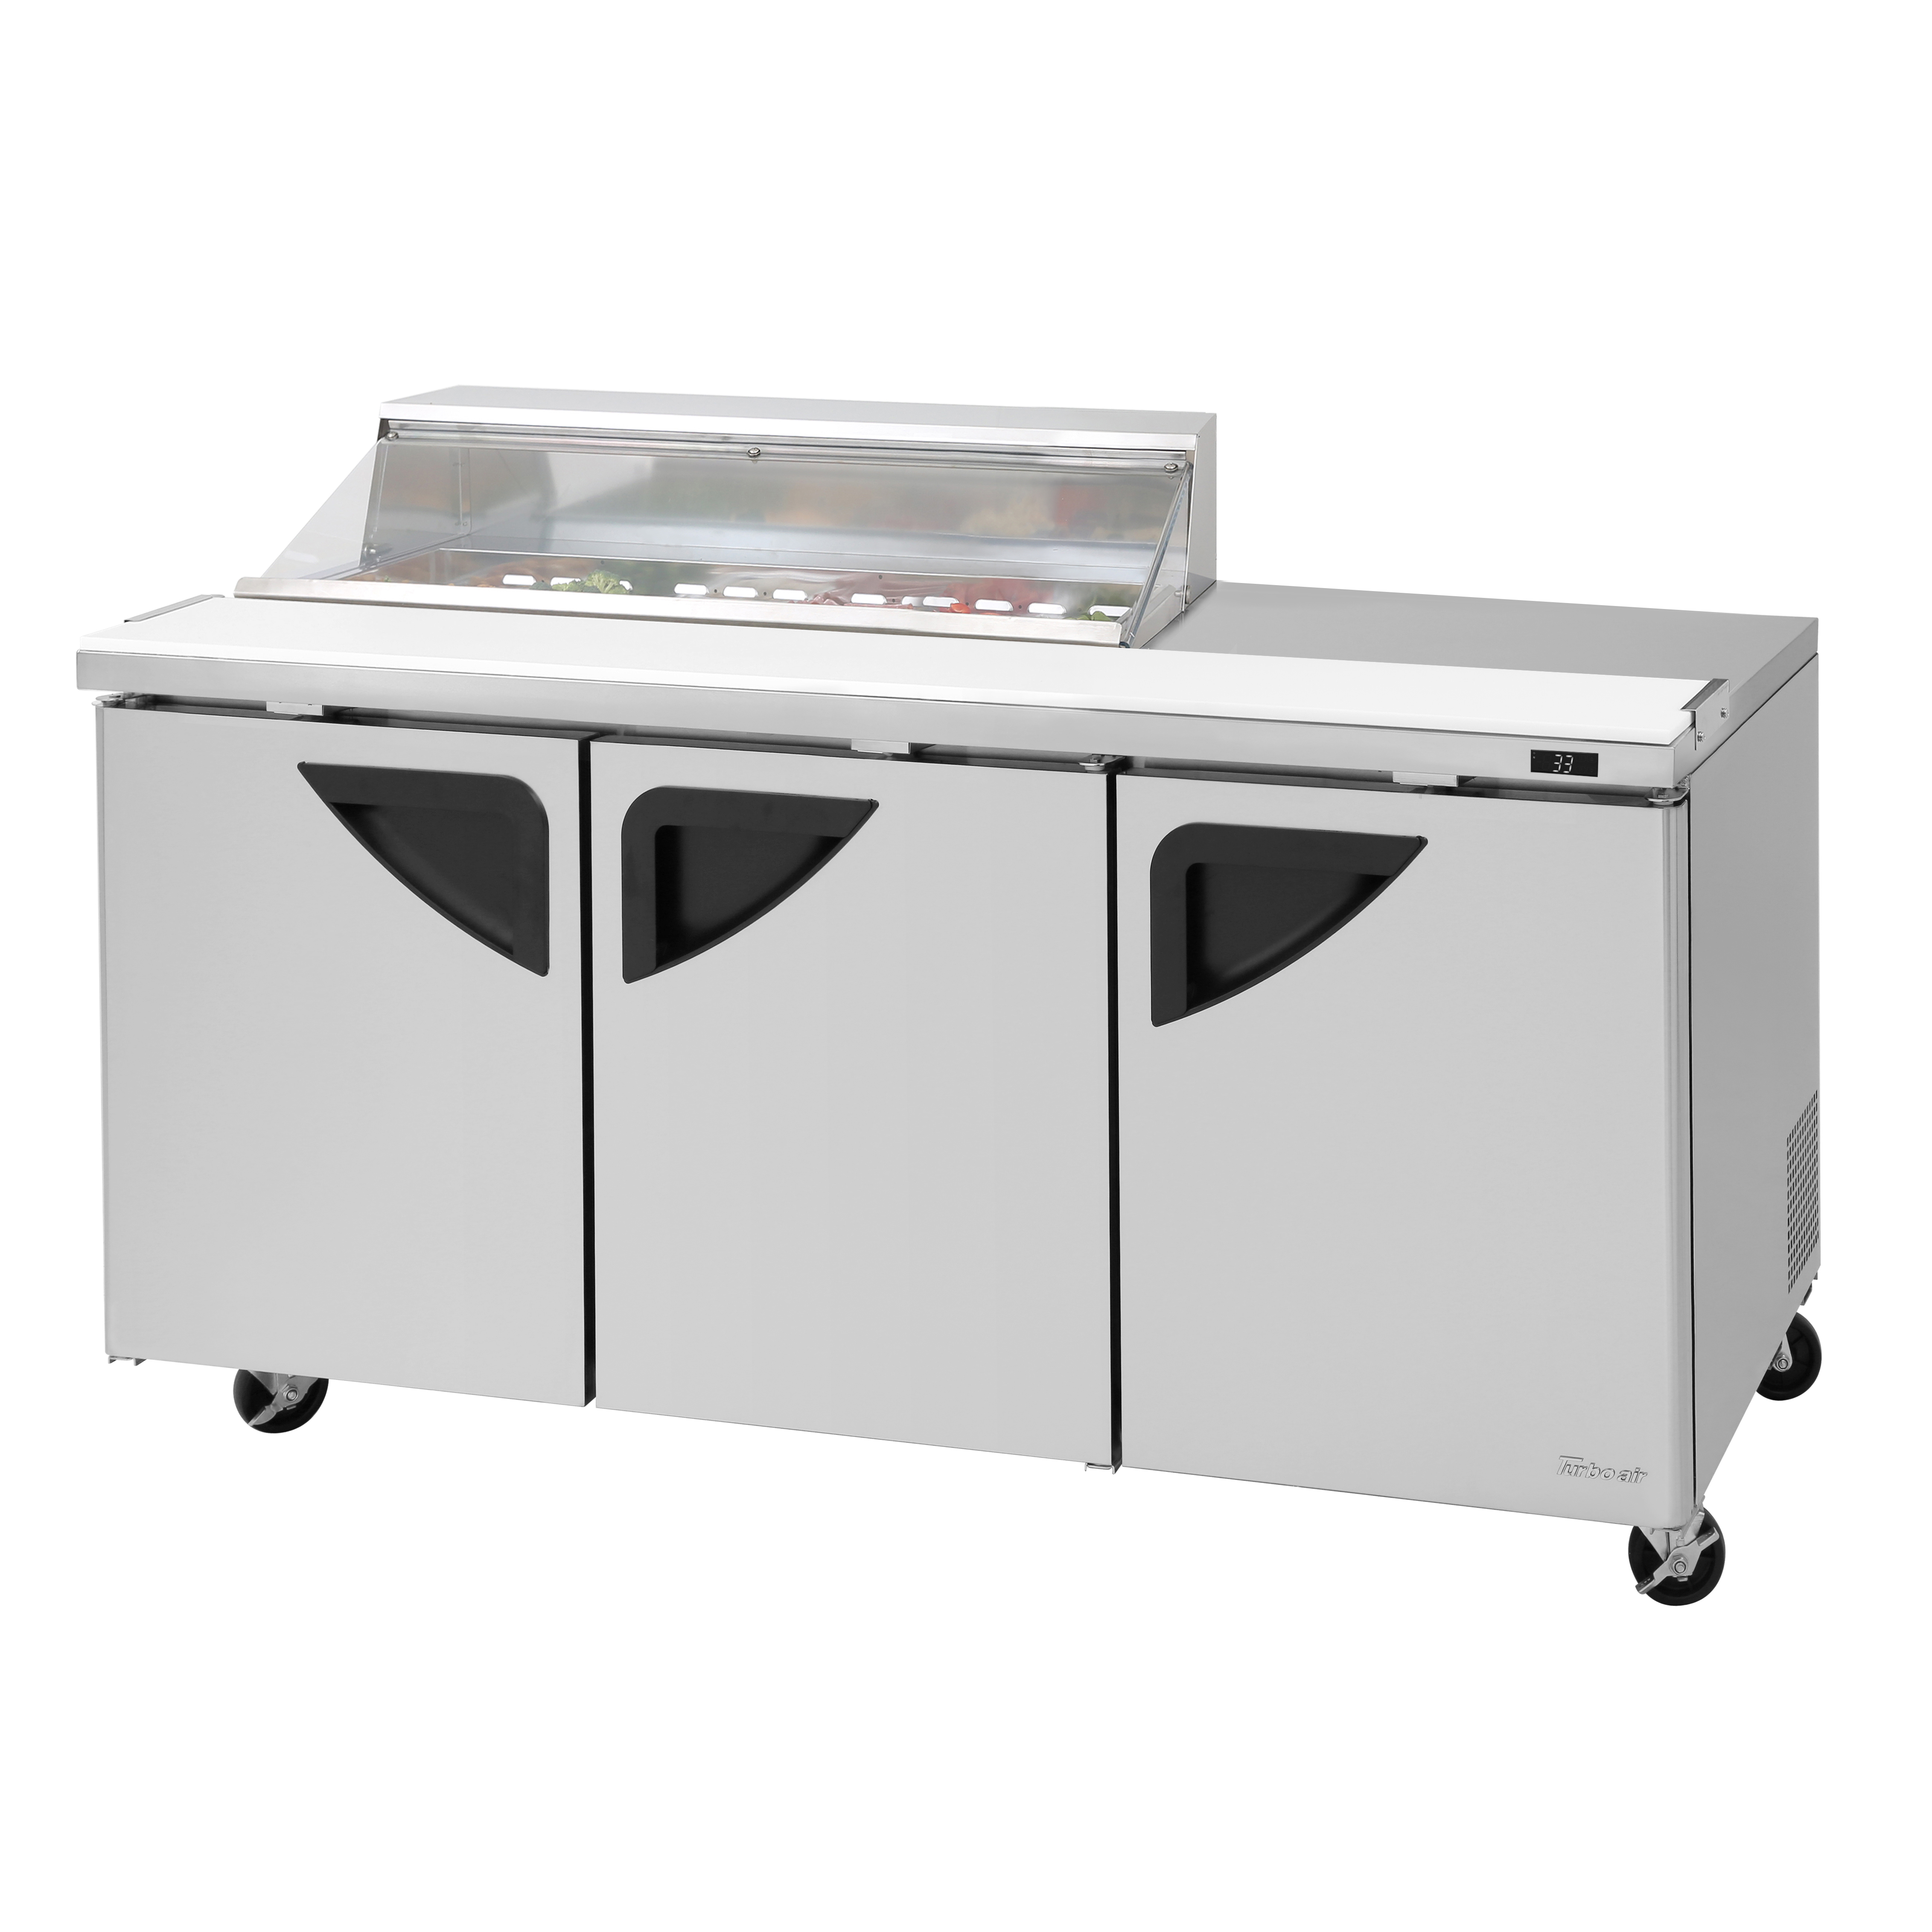 Turbo Air TST-72SD-12S-N-CL refrigerated counter, sandwich / salad unit